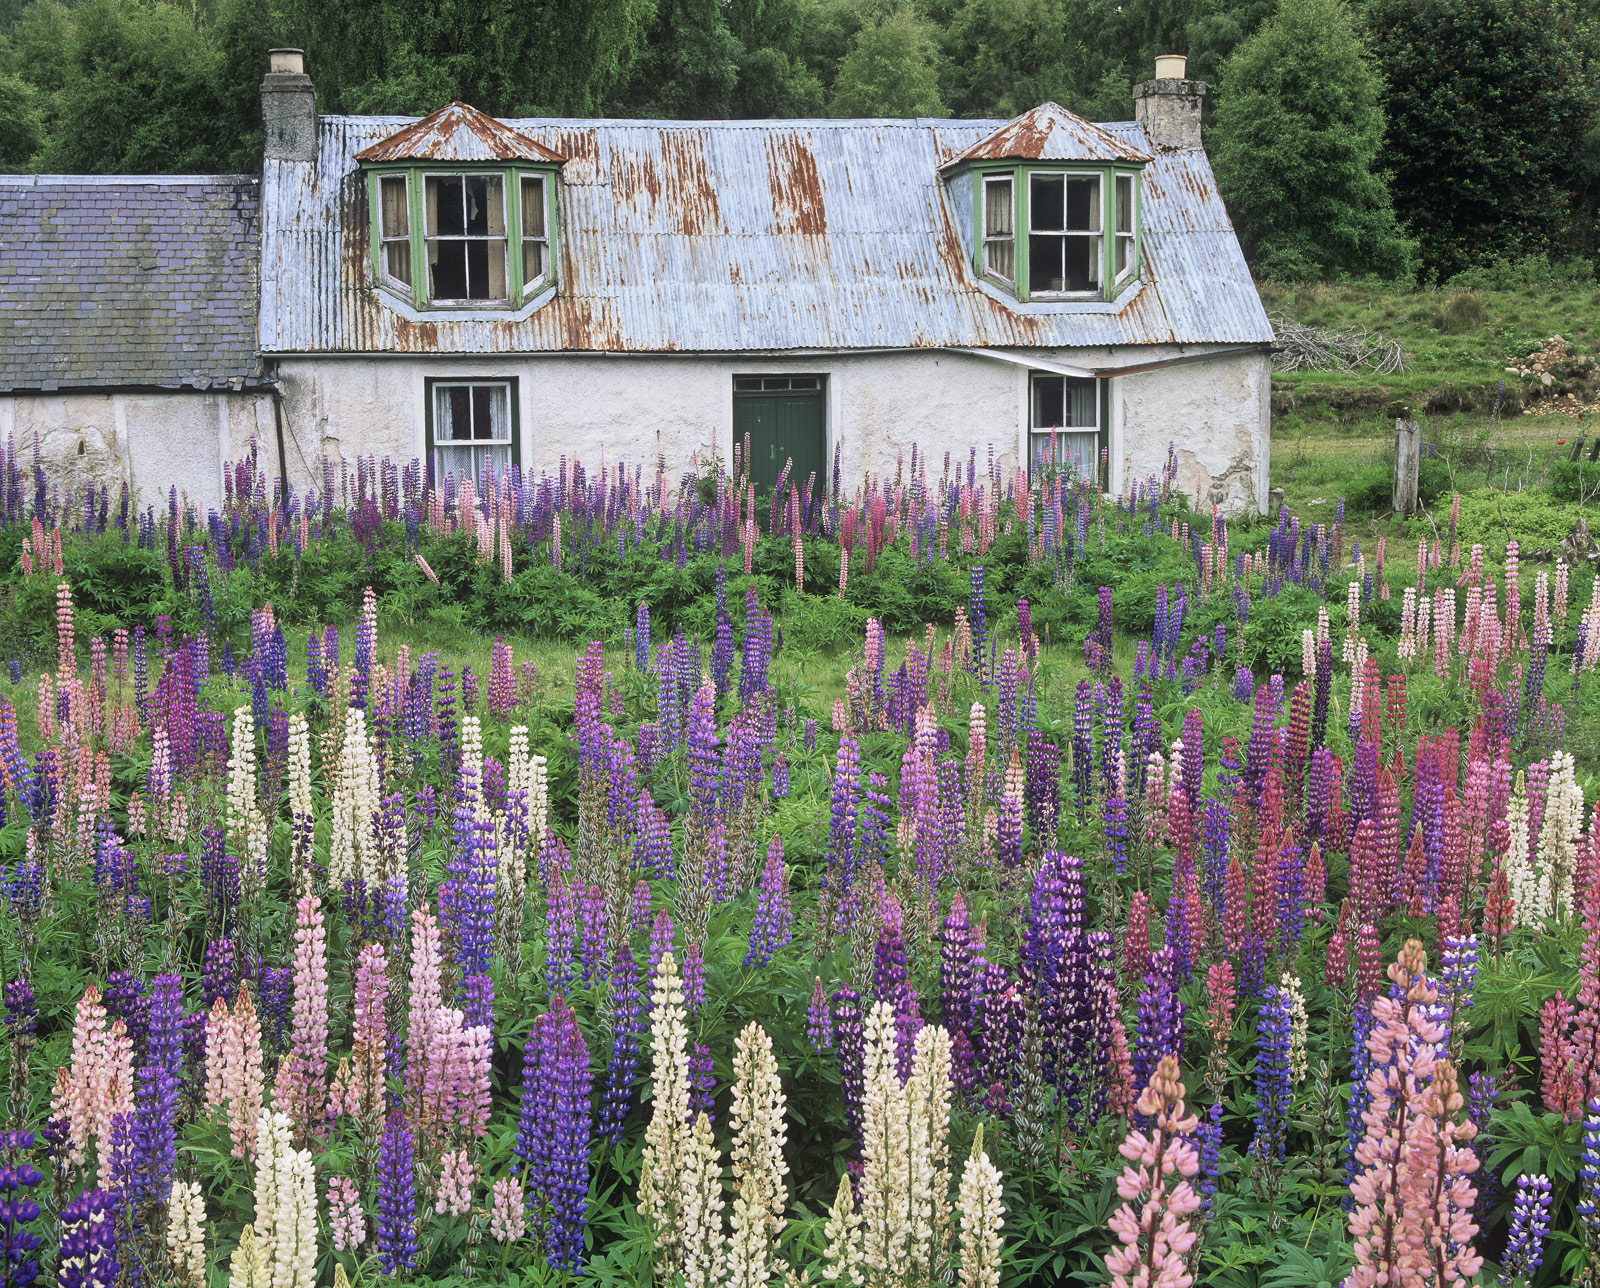 Whilst I have to admit this old tin roofed house is far from the most attractive place ever built the wild garden is a magnificent...